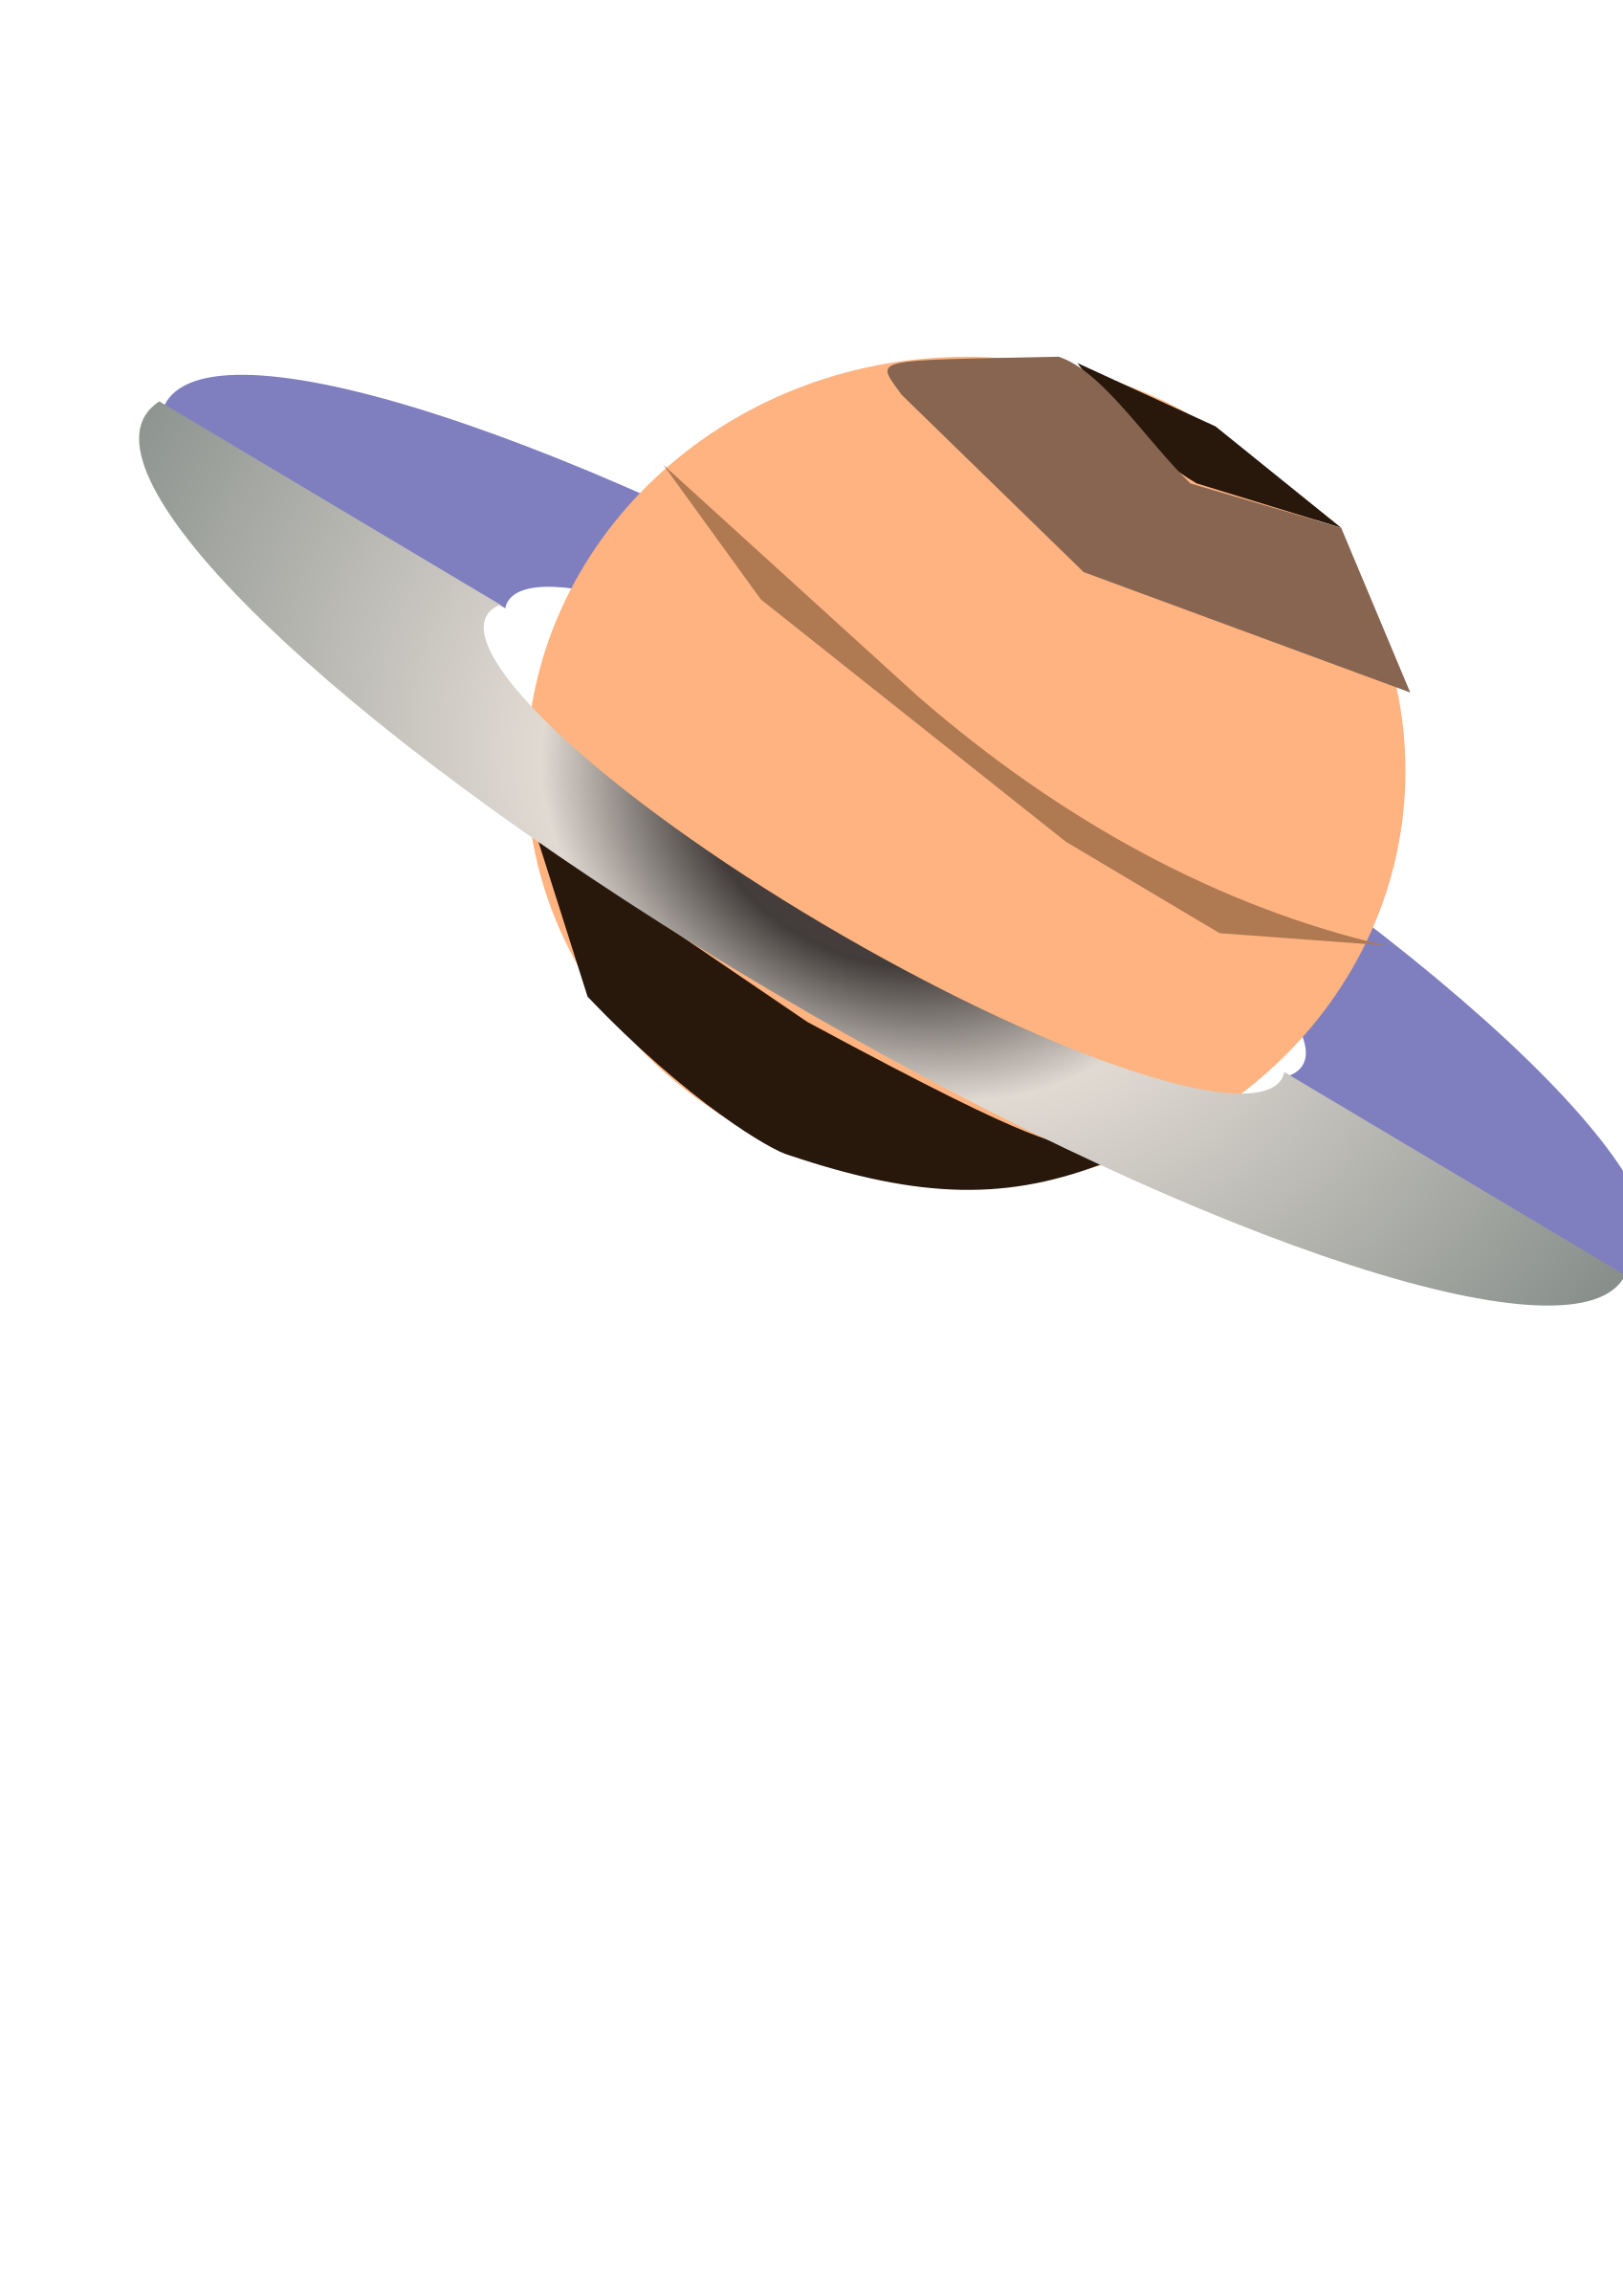 jupiter clip art planet png - photo #45